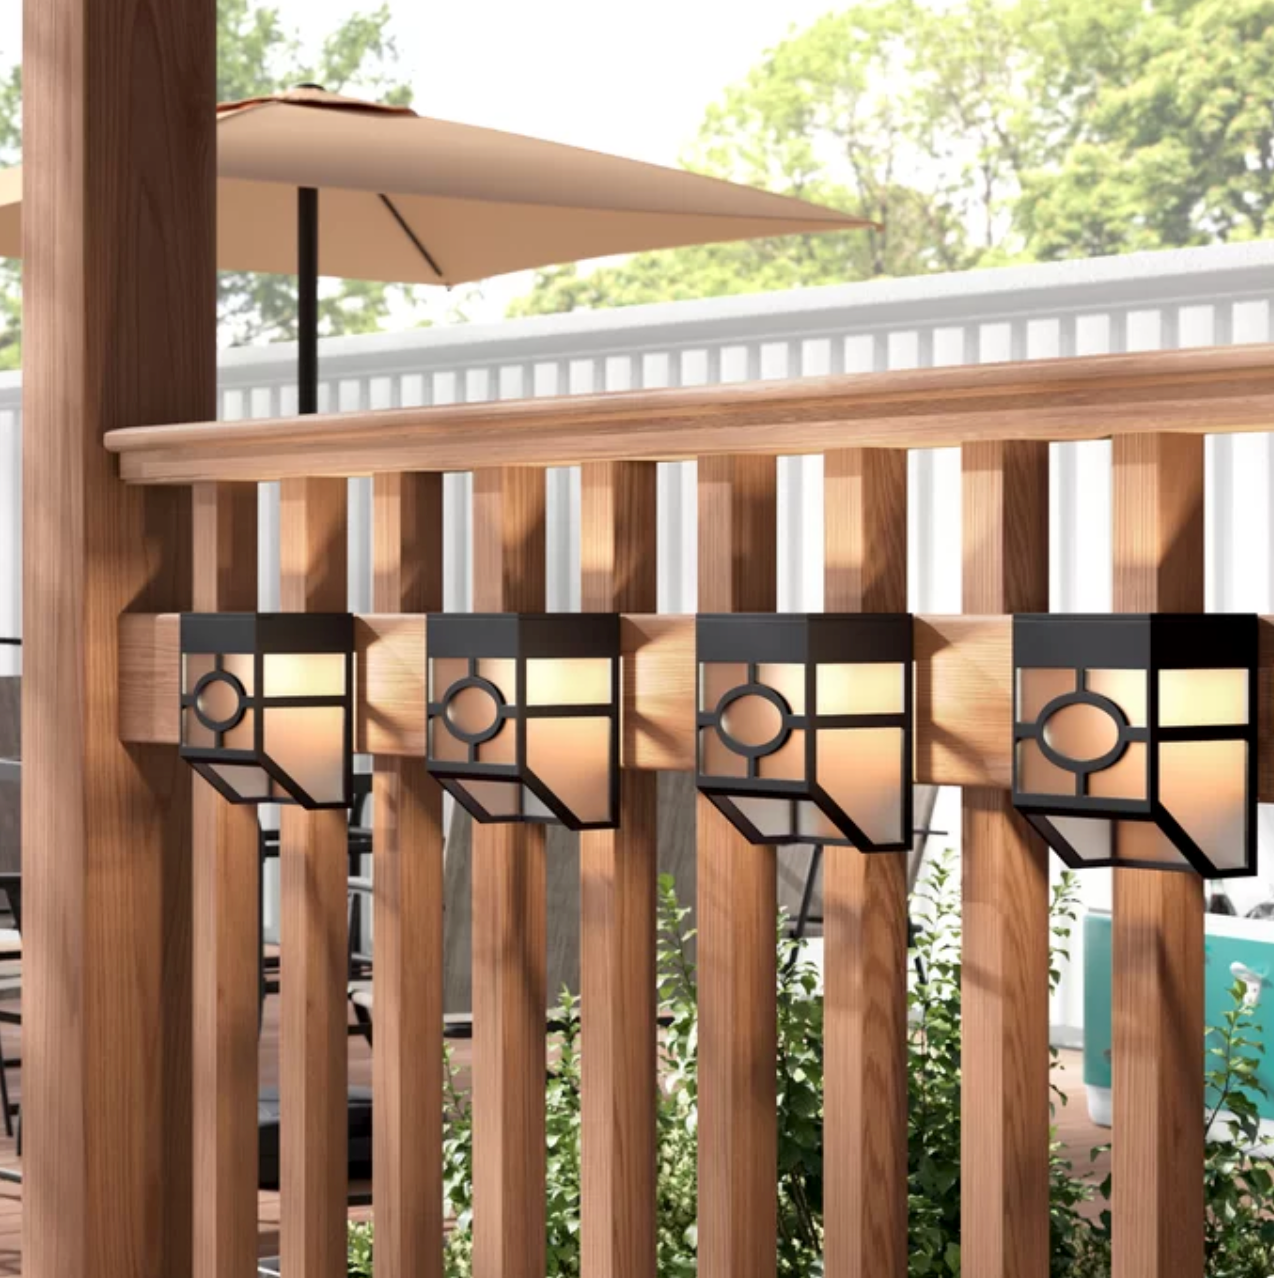 Wall lights used on a wooden fence in an outdoor space